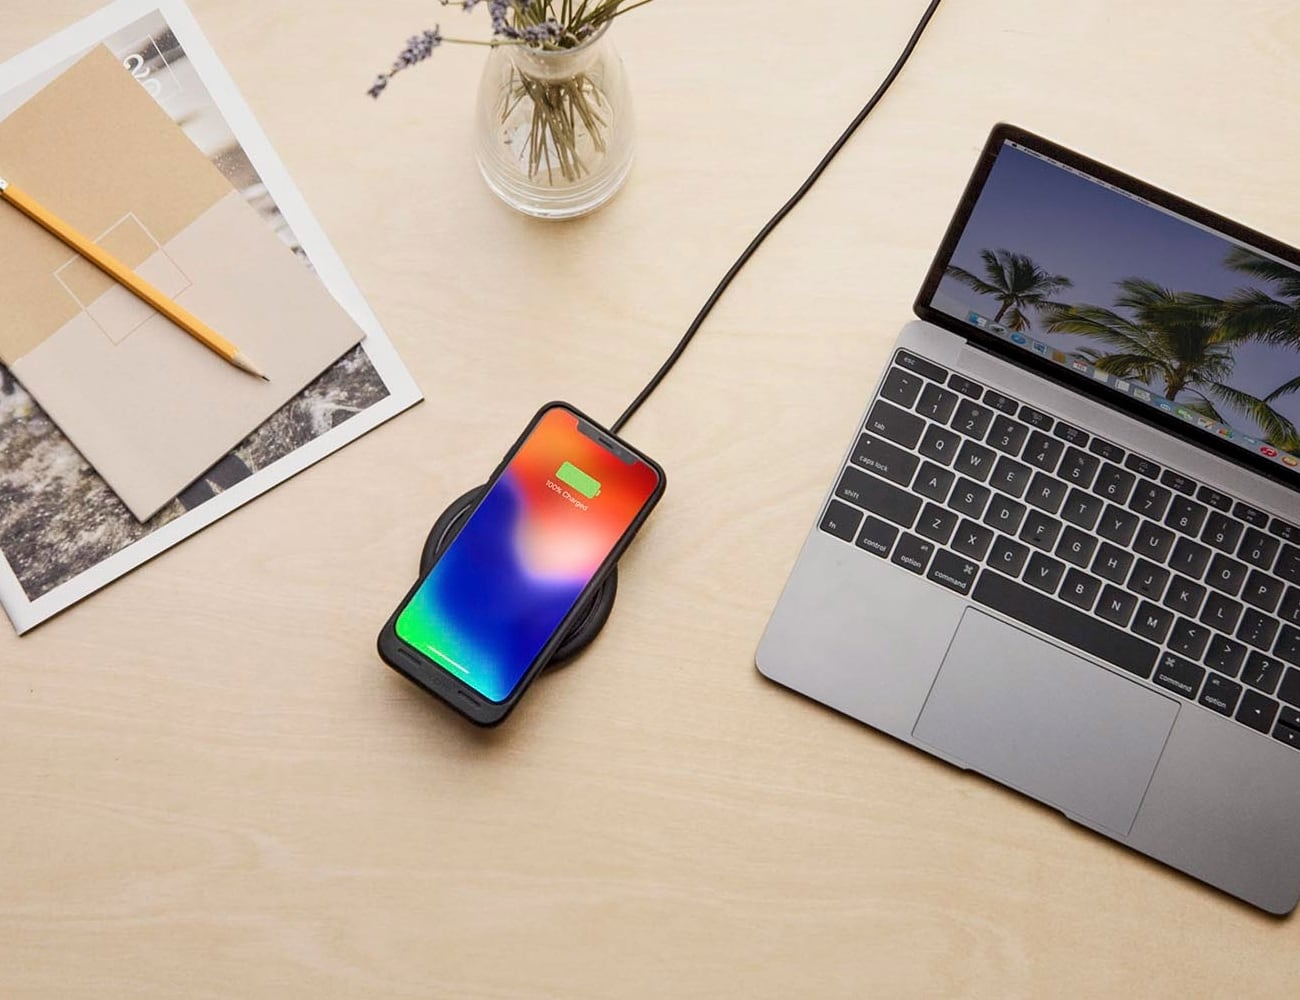 mophie juice pack air iPhone X Battery Case can wirelessly charge your smartphone